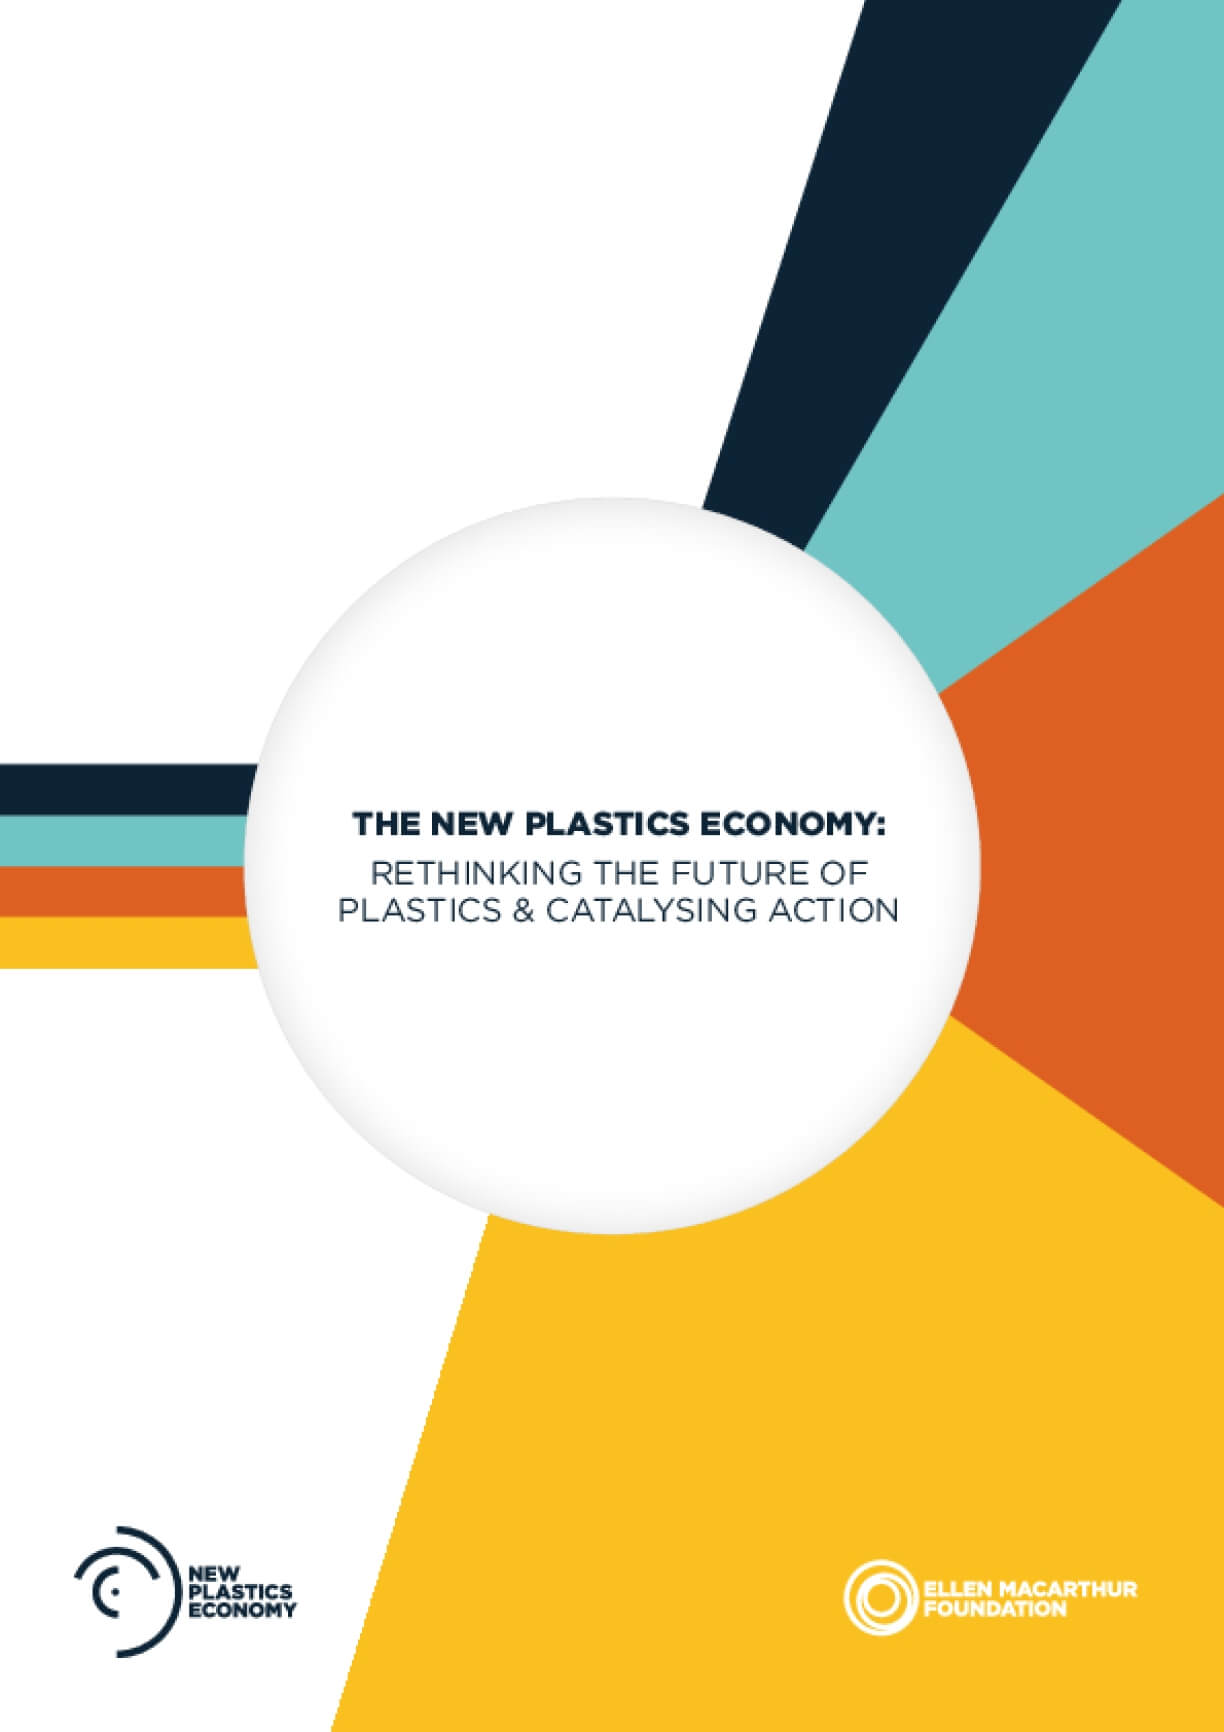 The New Plastics Economy: Rethinking the Future of Plastics & Catalysing Action